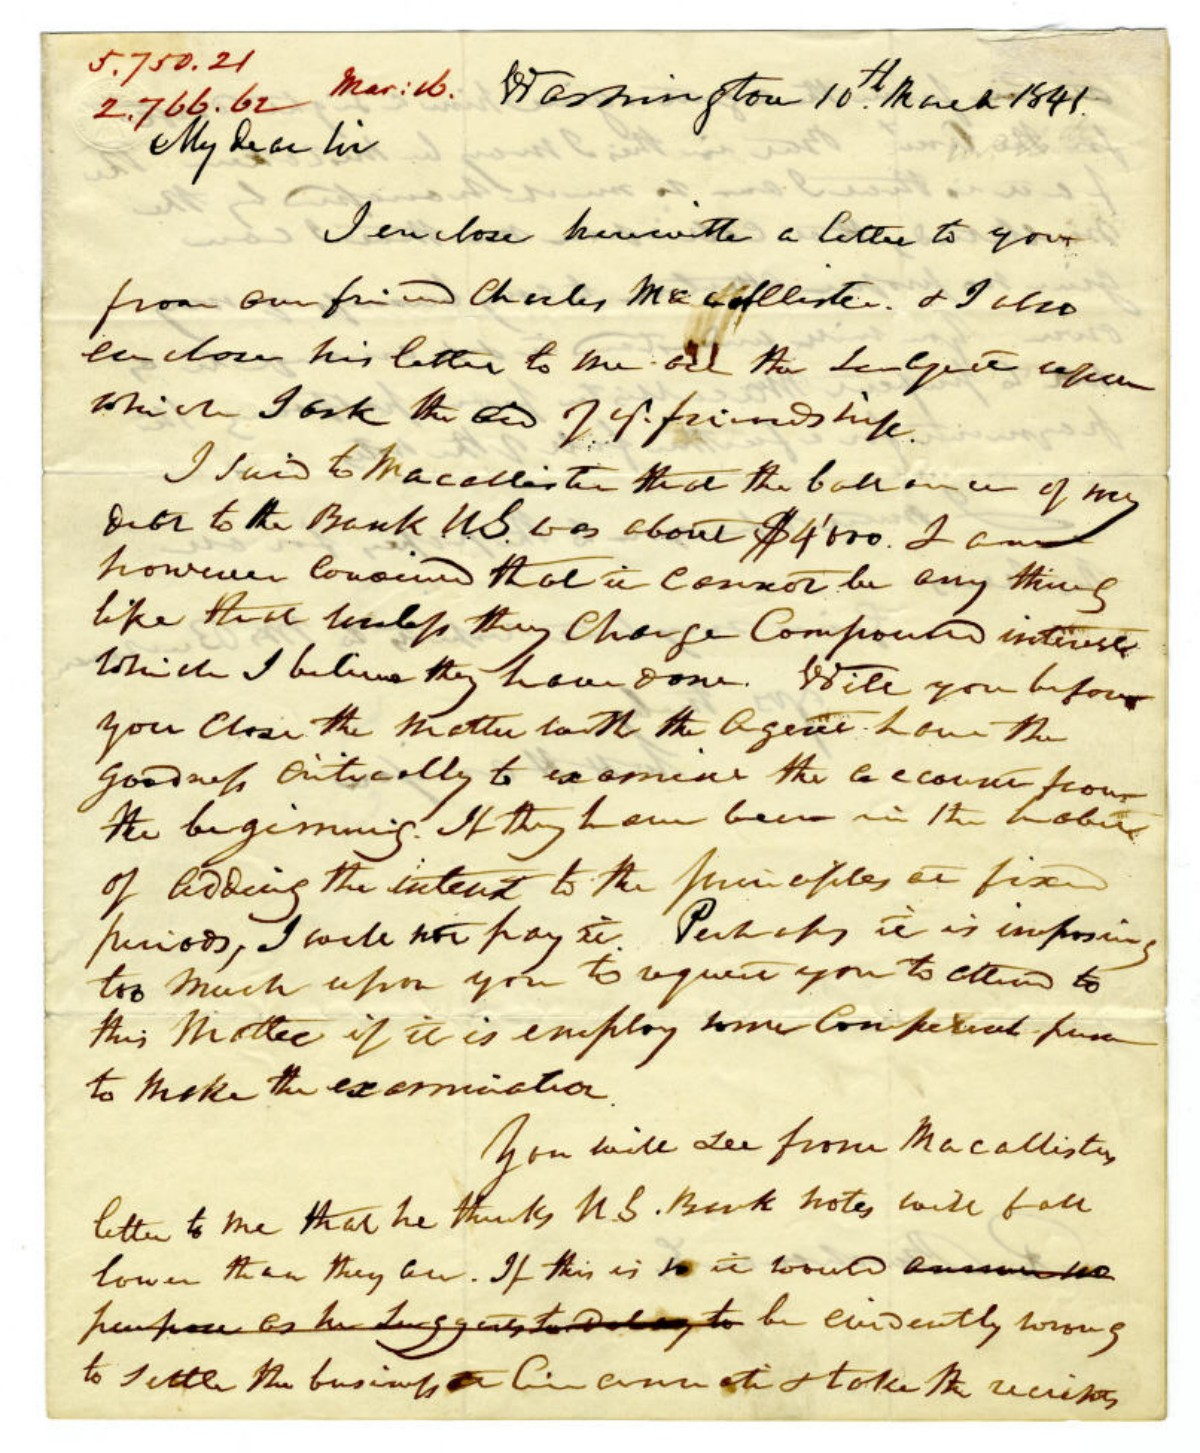 William Henry Harrison's Secretary Announces Harrison's Impending Death